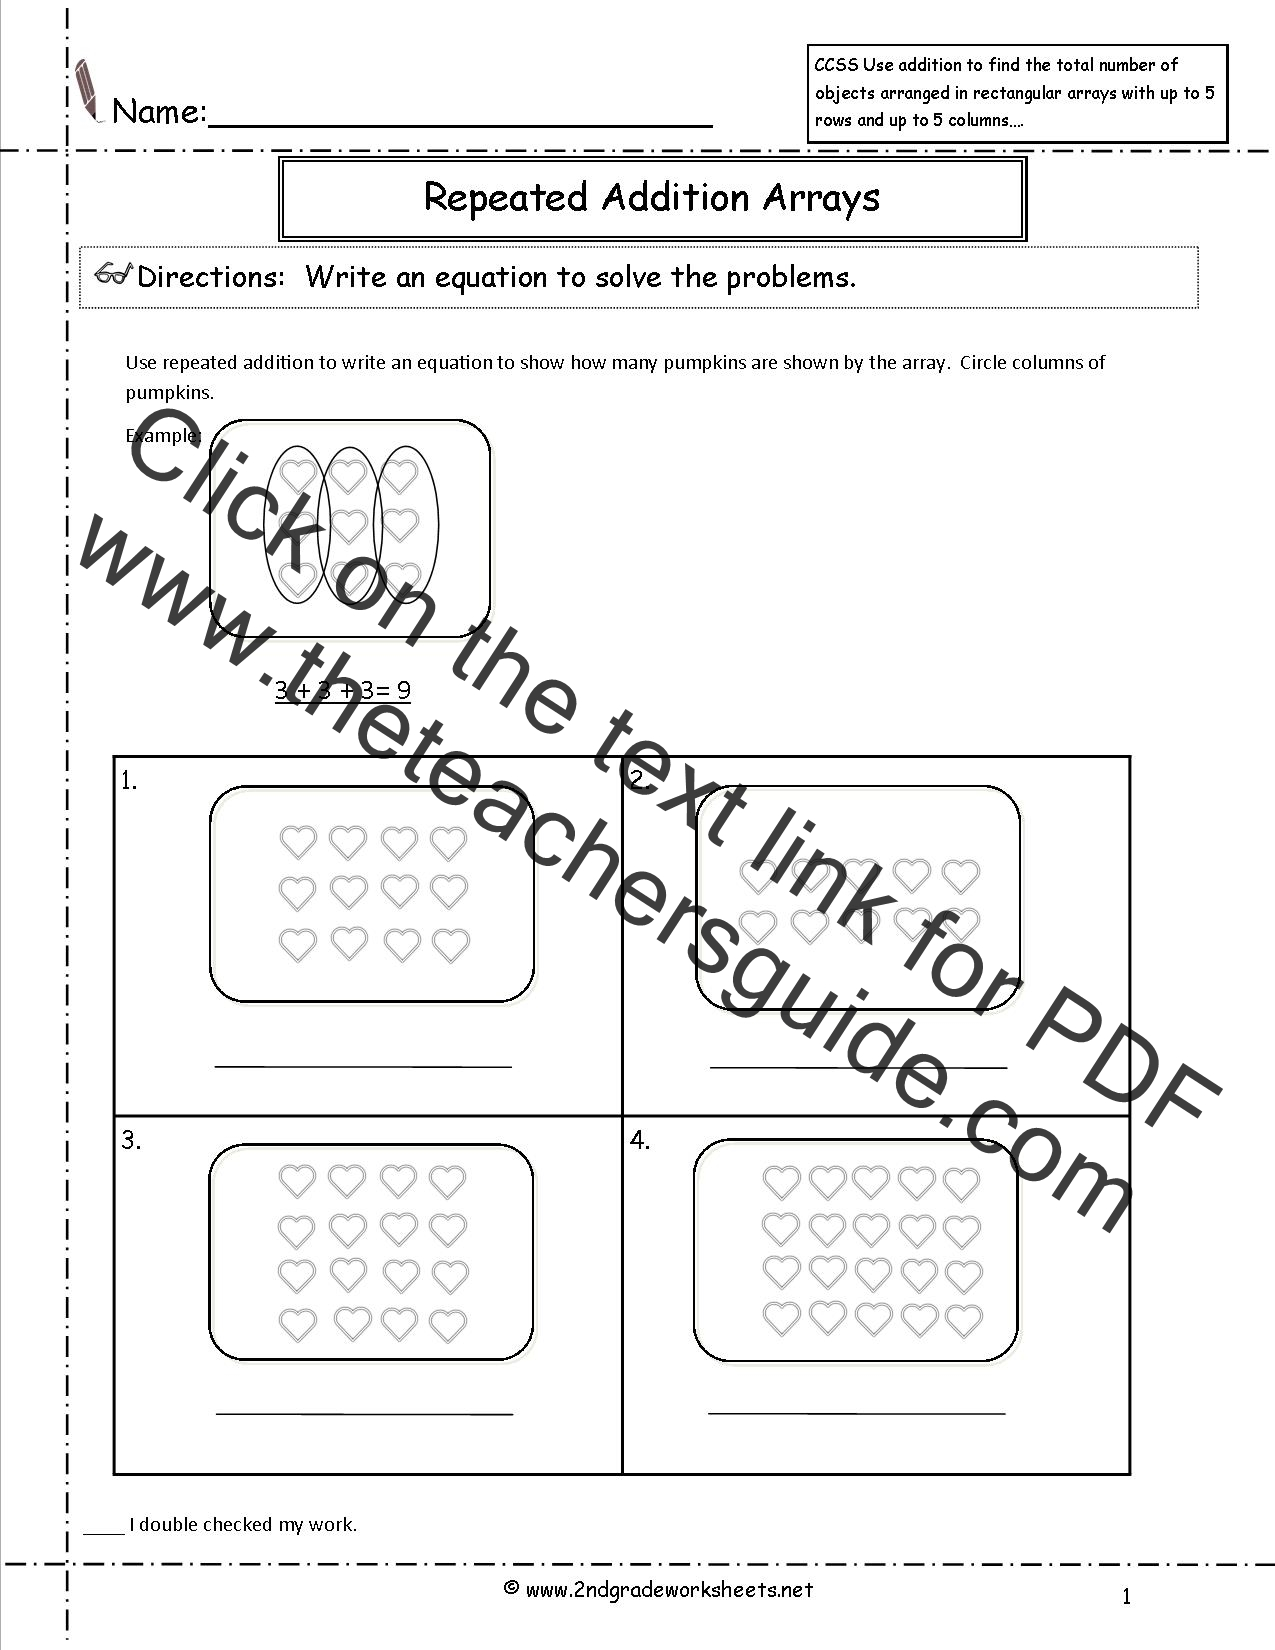 Repeated Addition Worksheet Free Worksheets Library – Repeated Addition Worksheets Ks1